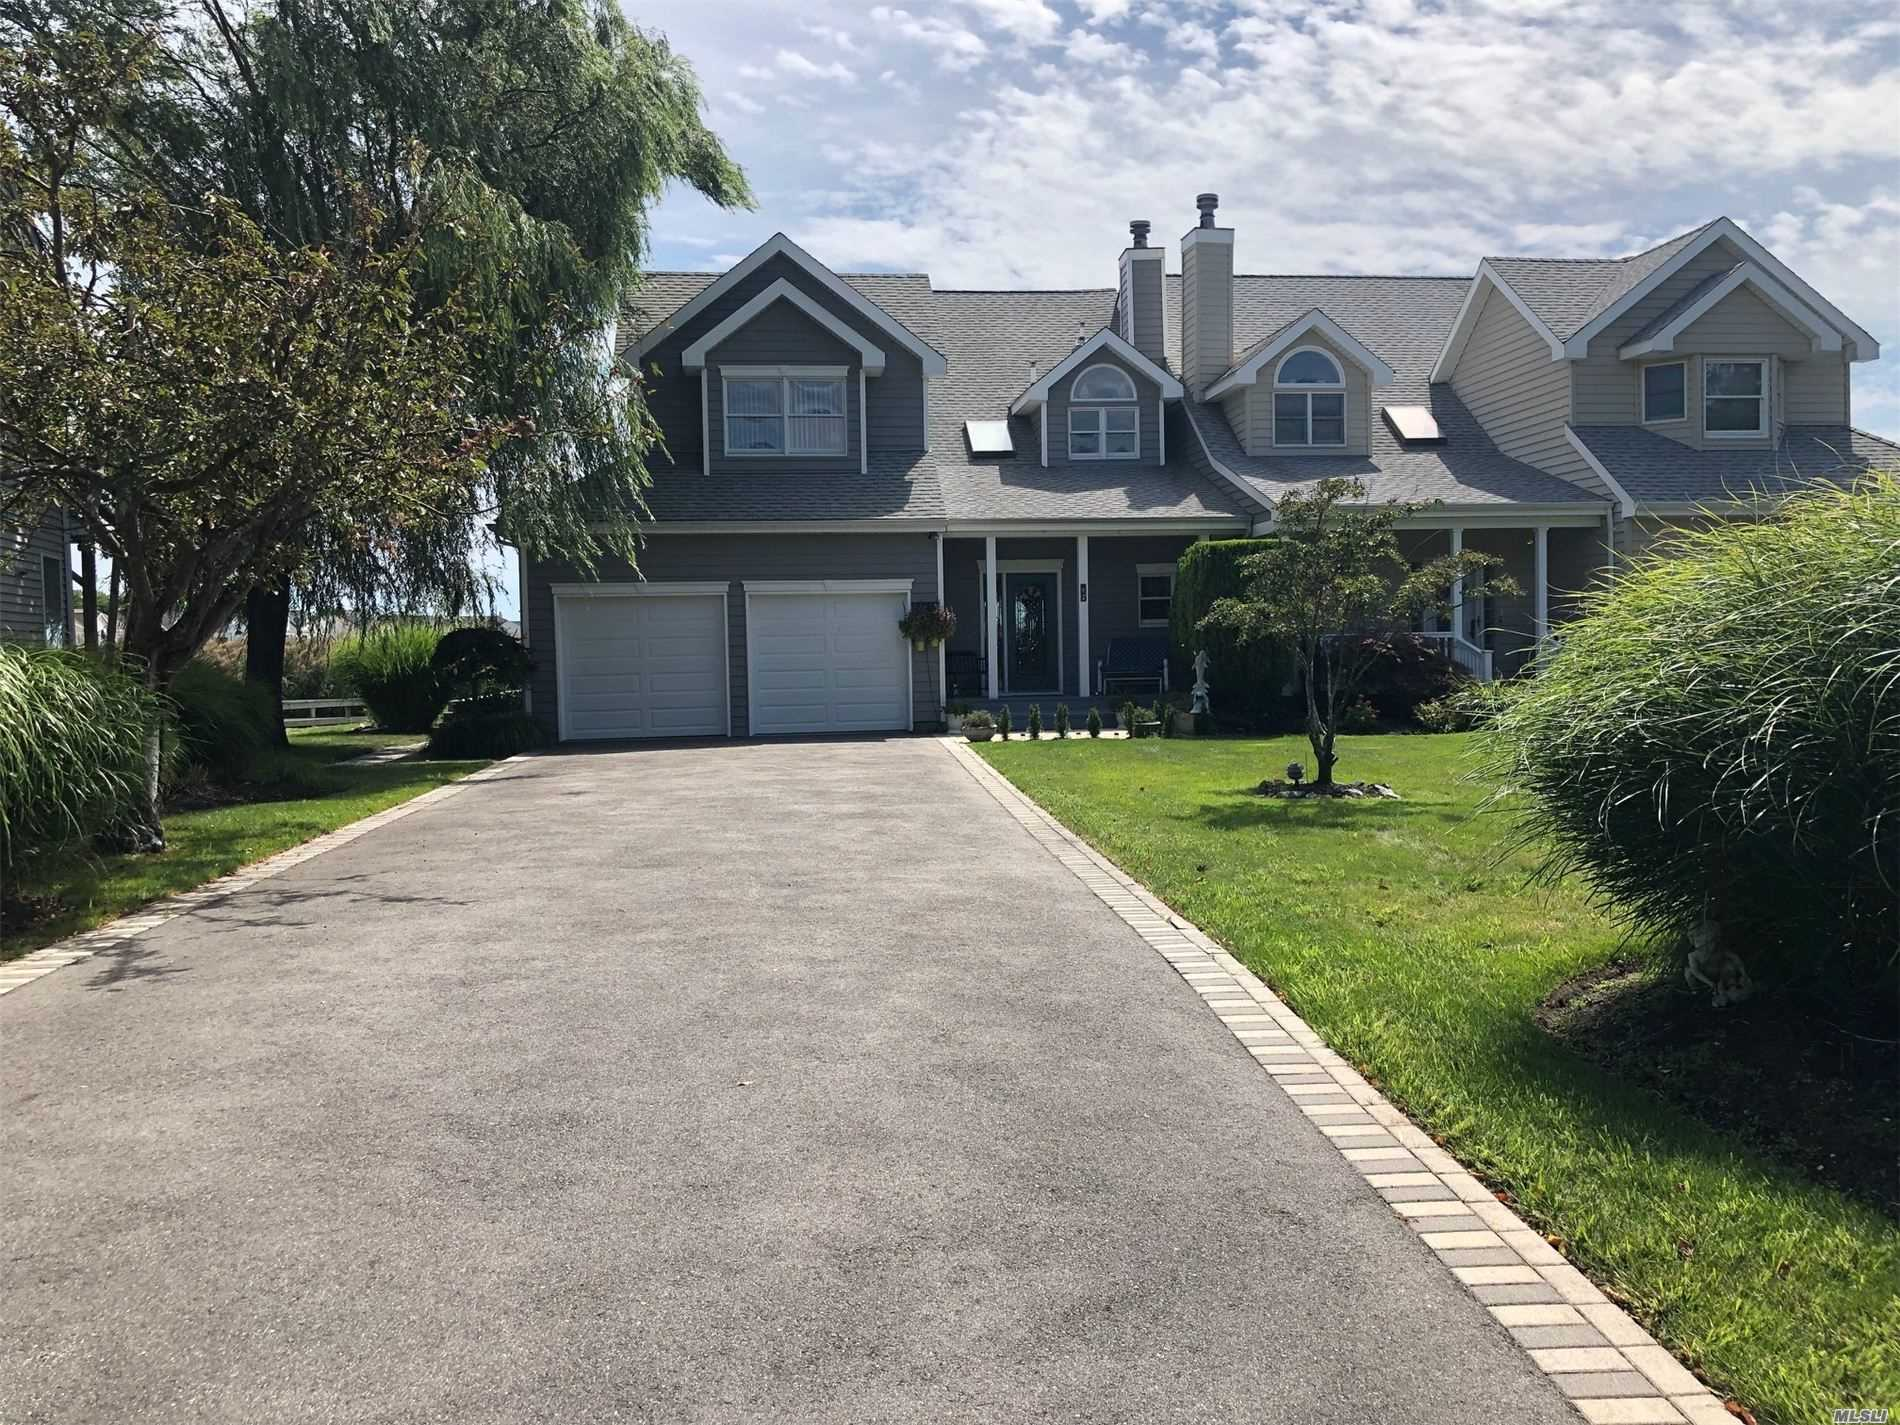 35 Spinnaker Ln - E. Patchogue, New York